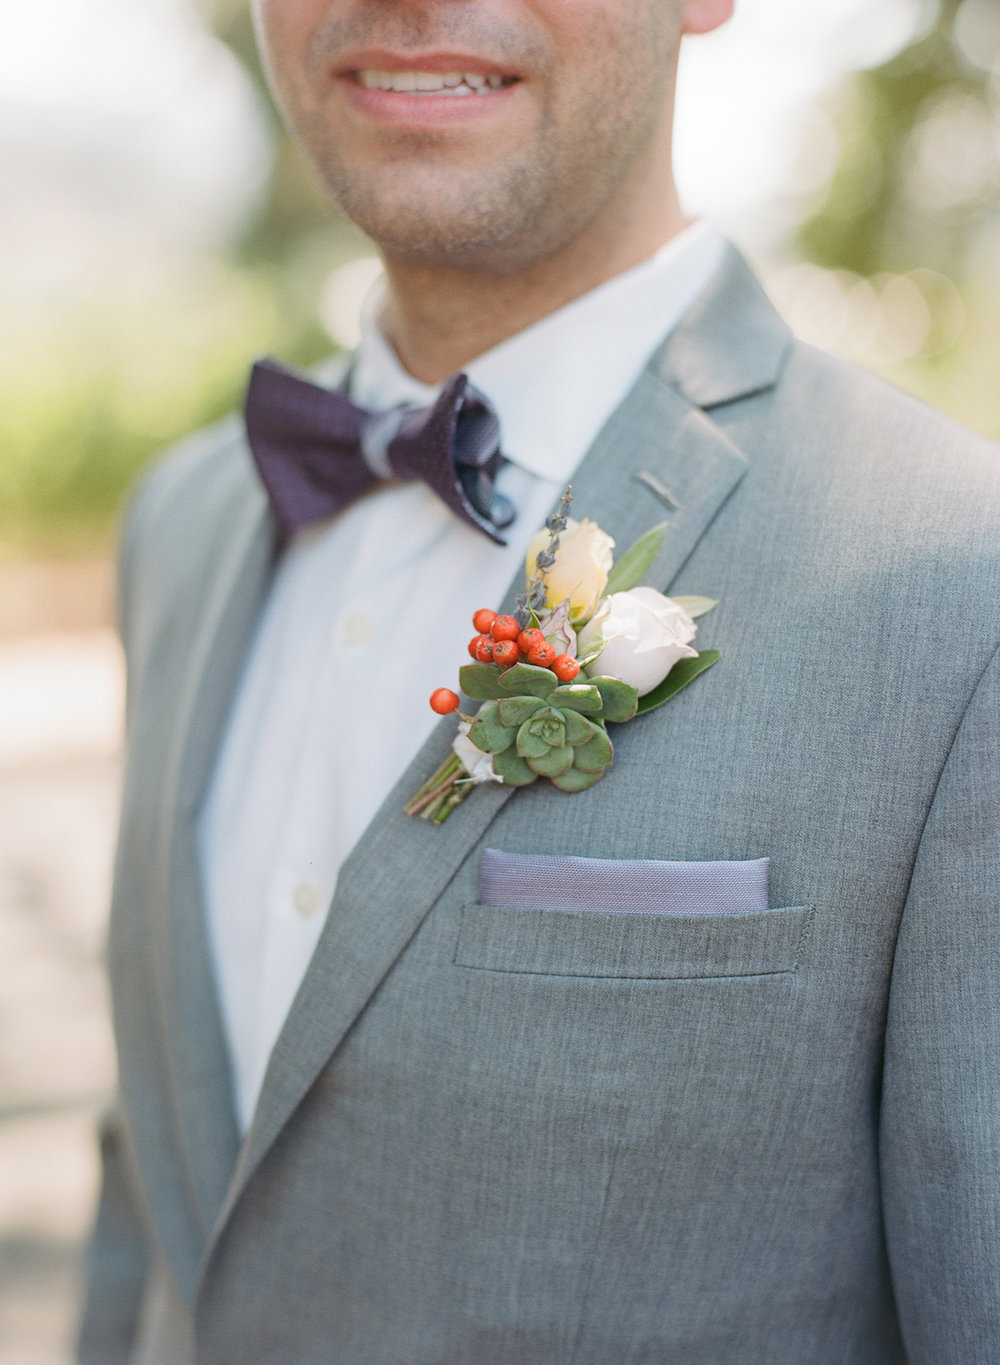 One of the grooms' succulent boutonnieres and pocket square; Sylvie Gil Photography